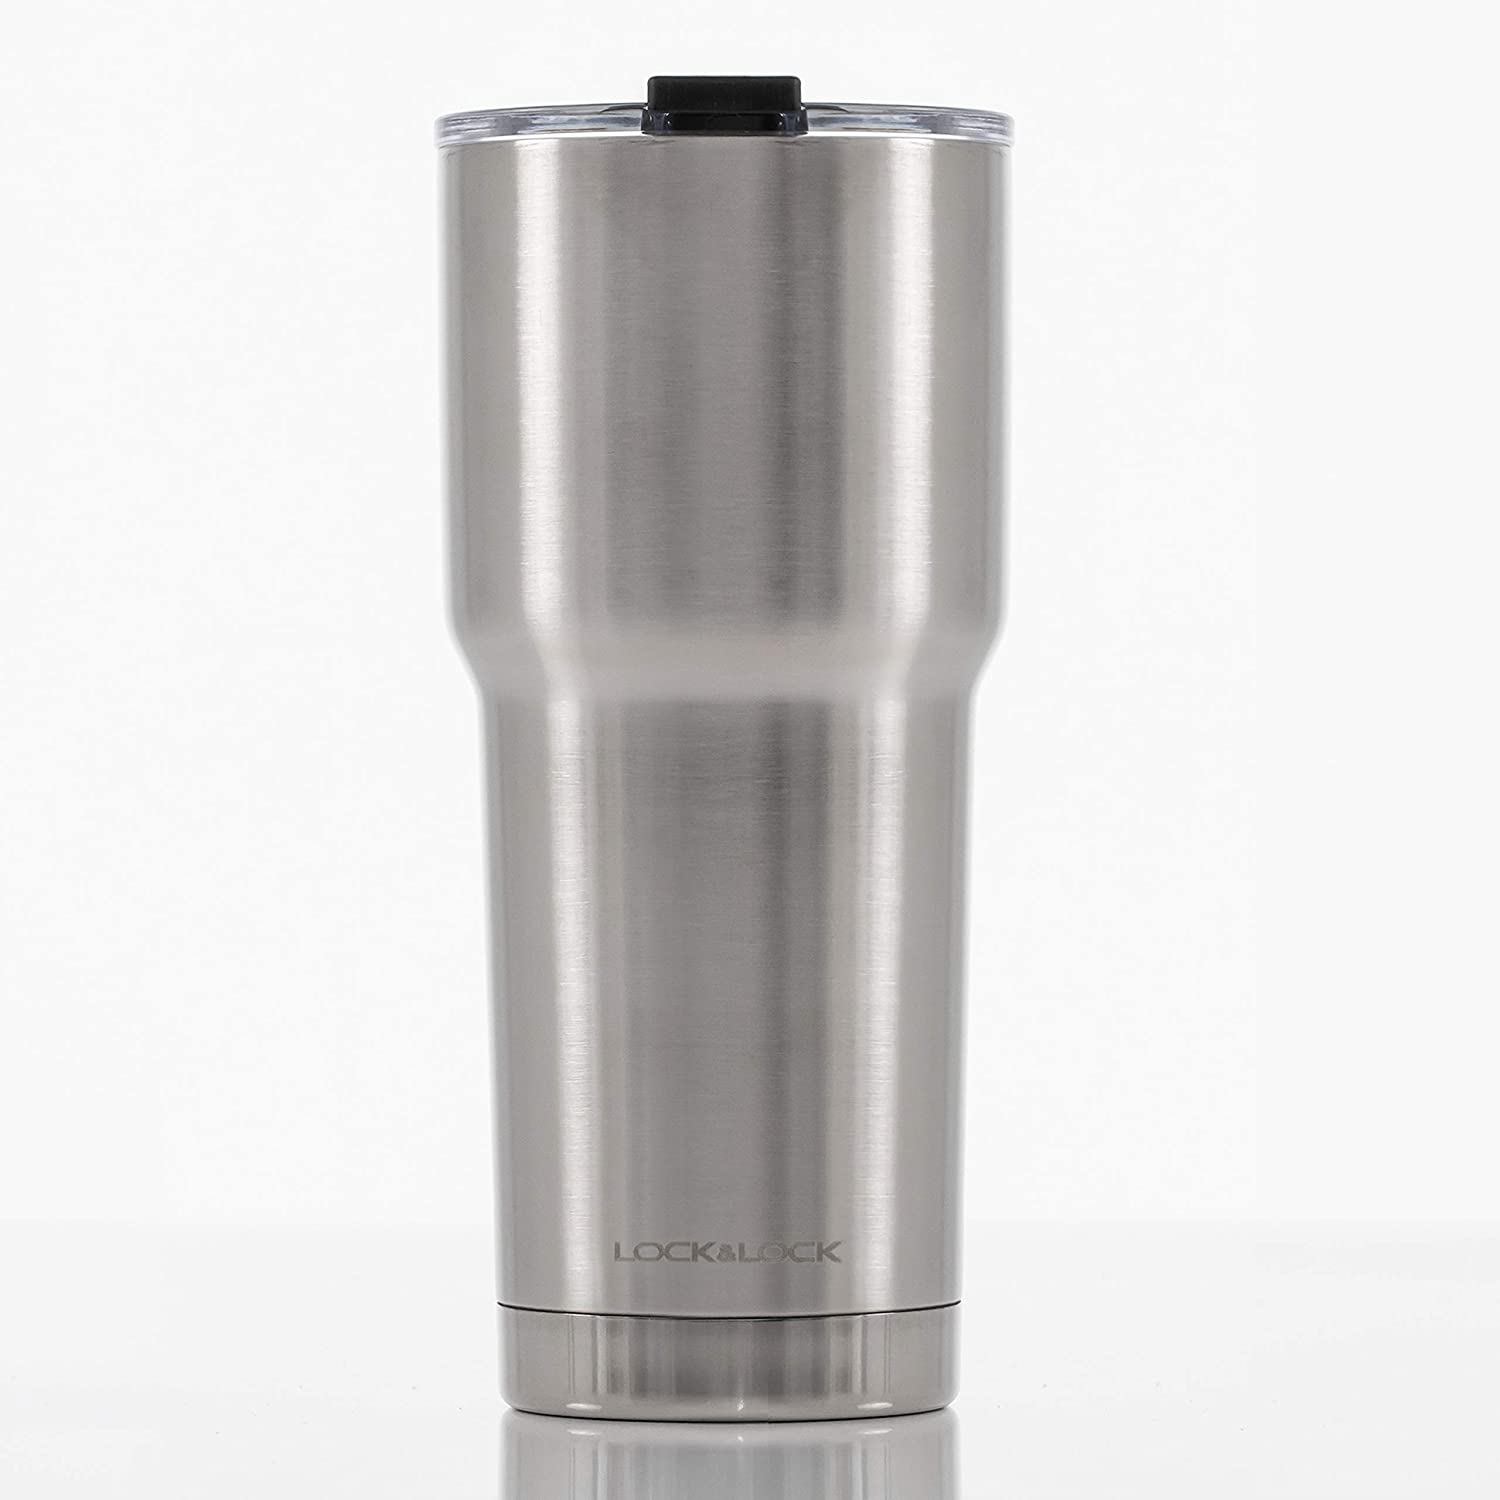 LOCK & LOCK Stainless Steel Double Wall Vacuum Insulated BPA-Free Non Toxic Travel Mug for Cold Drinks and Hot Beverages, 24oz, Brushed Aluminum